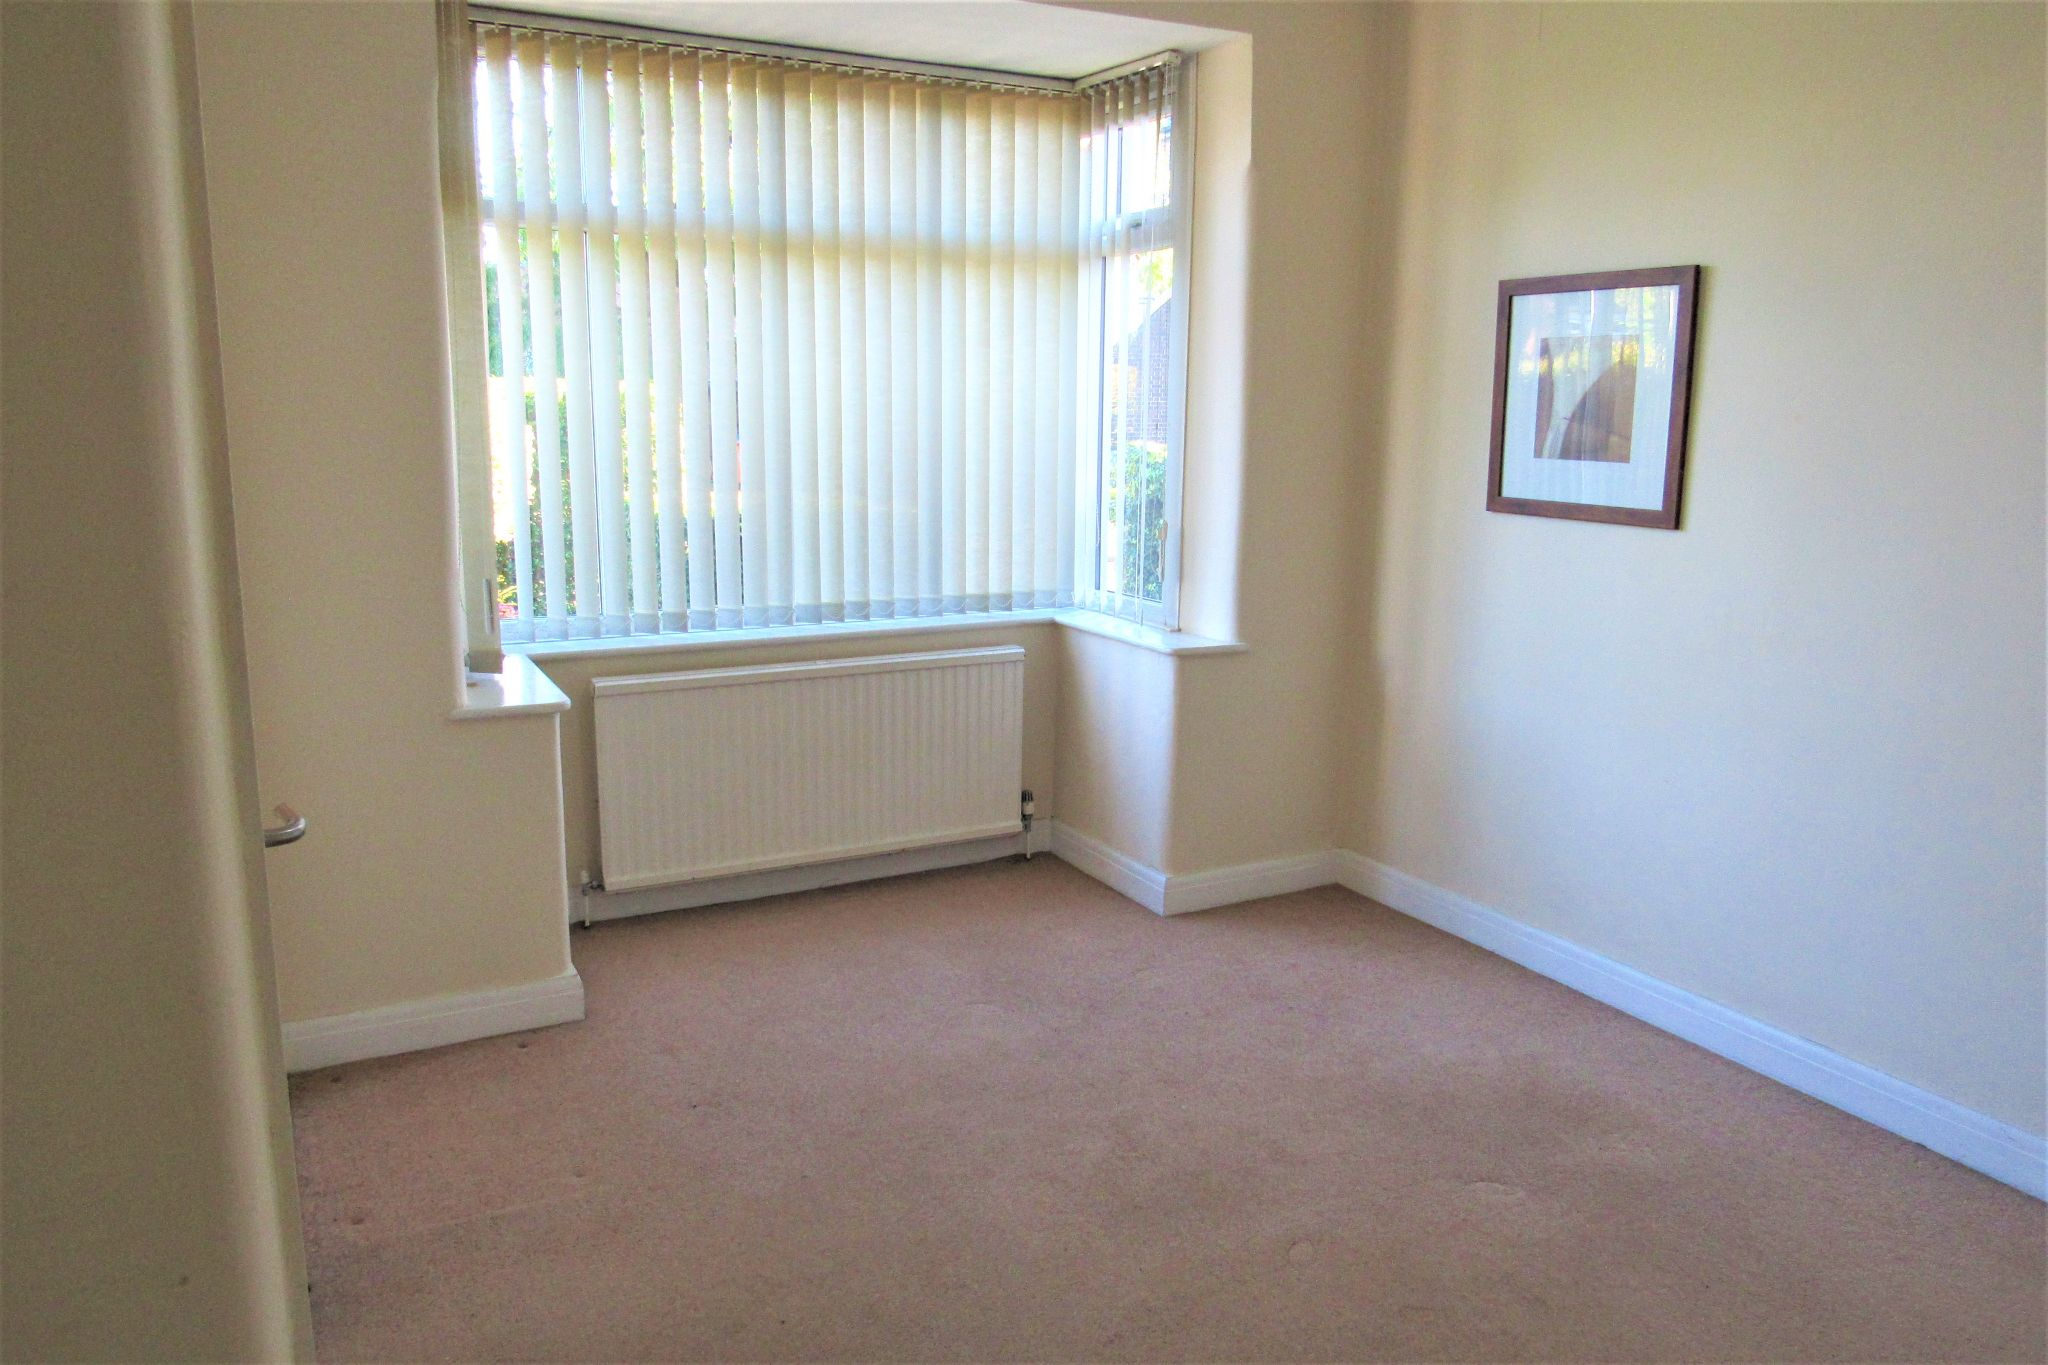 3 bedroom semi-detached house For Sale in Manchester - Photograph 11.